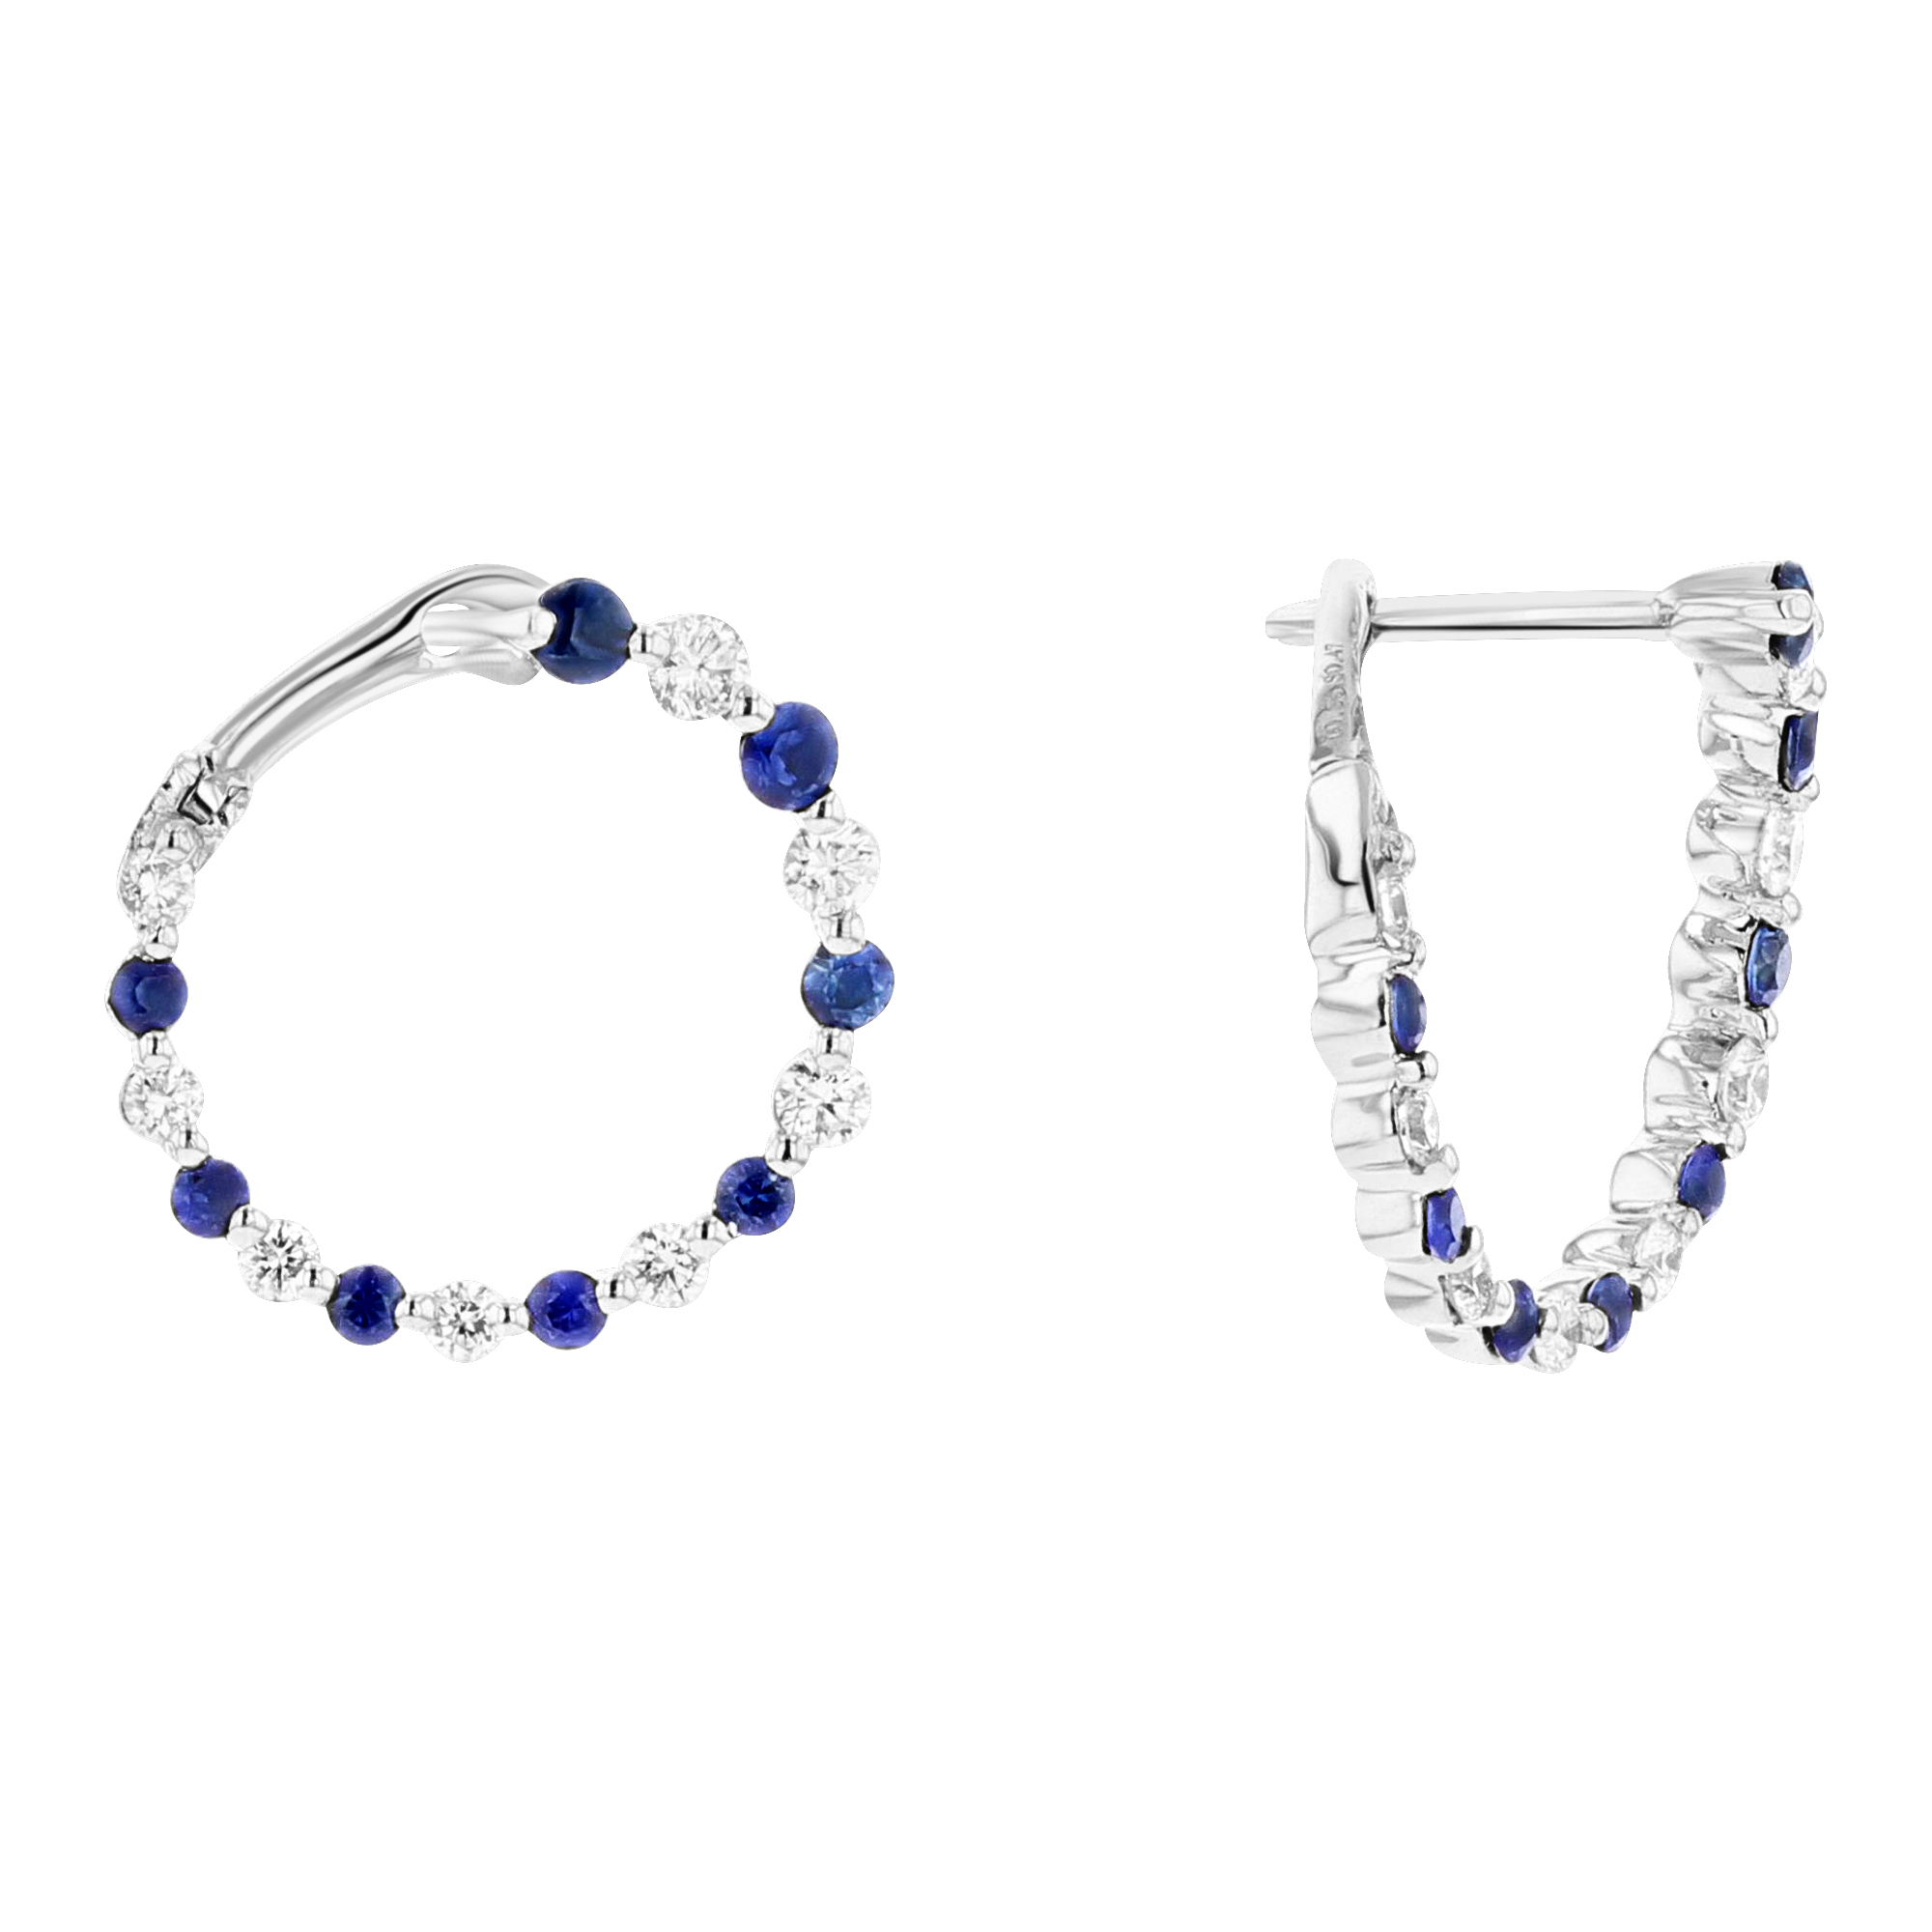 View 0.82ctw Diamond and Sapphire Fashion Earrings in 18k White Gold